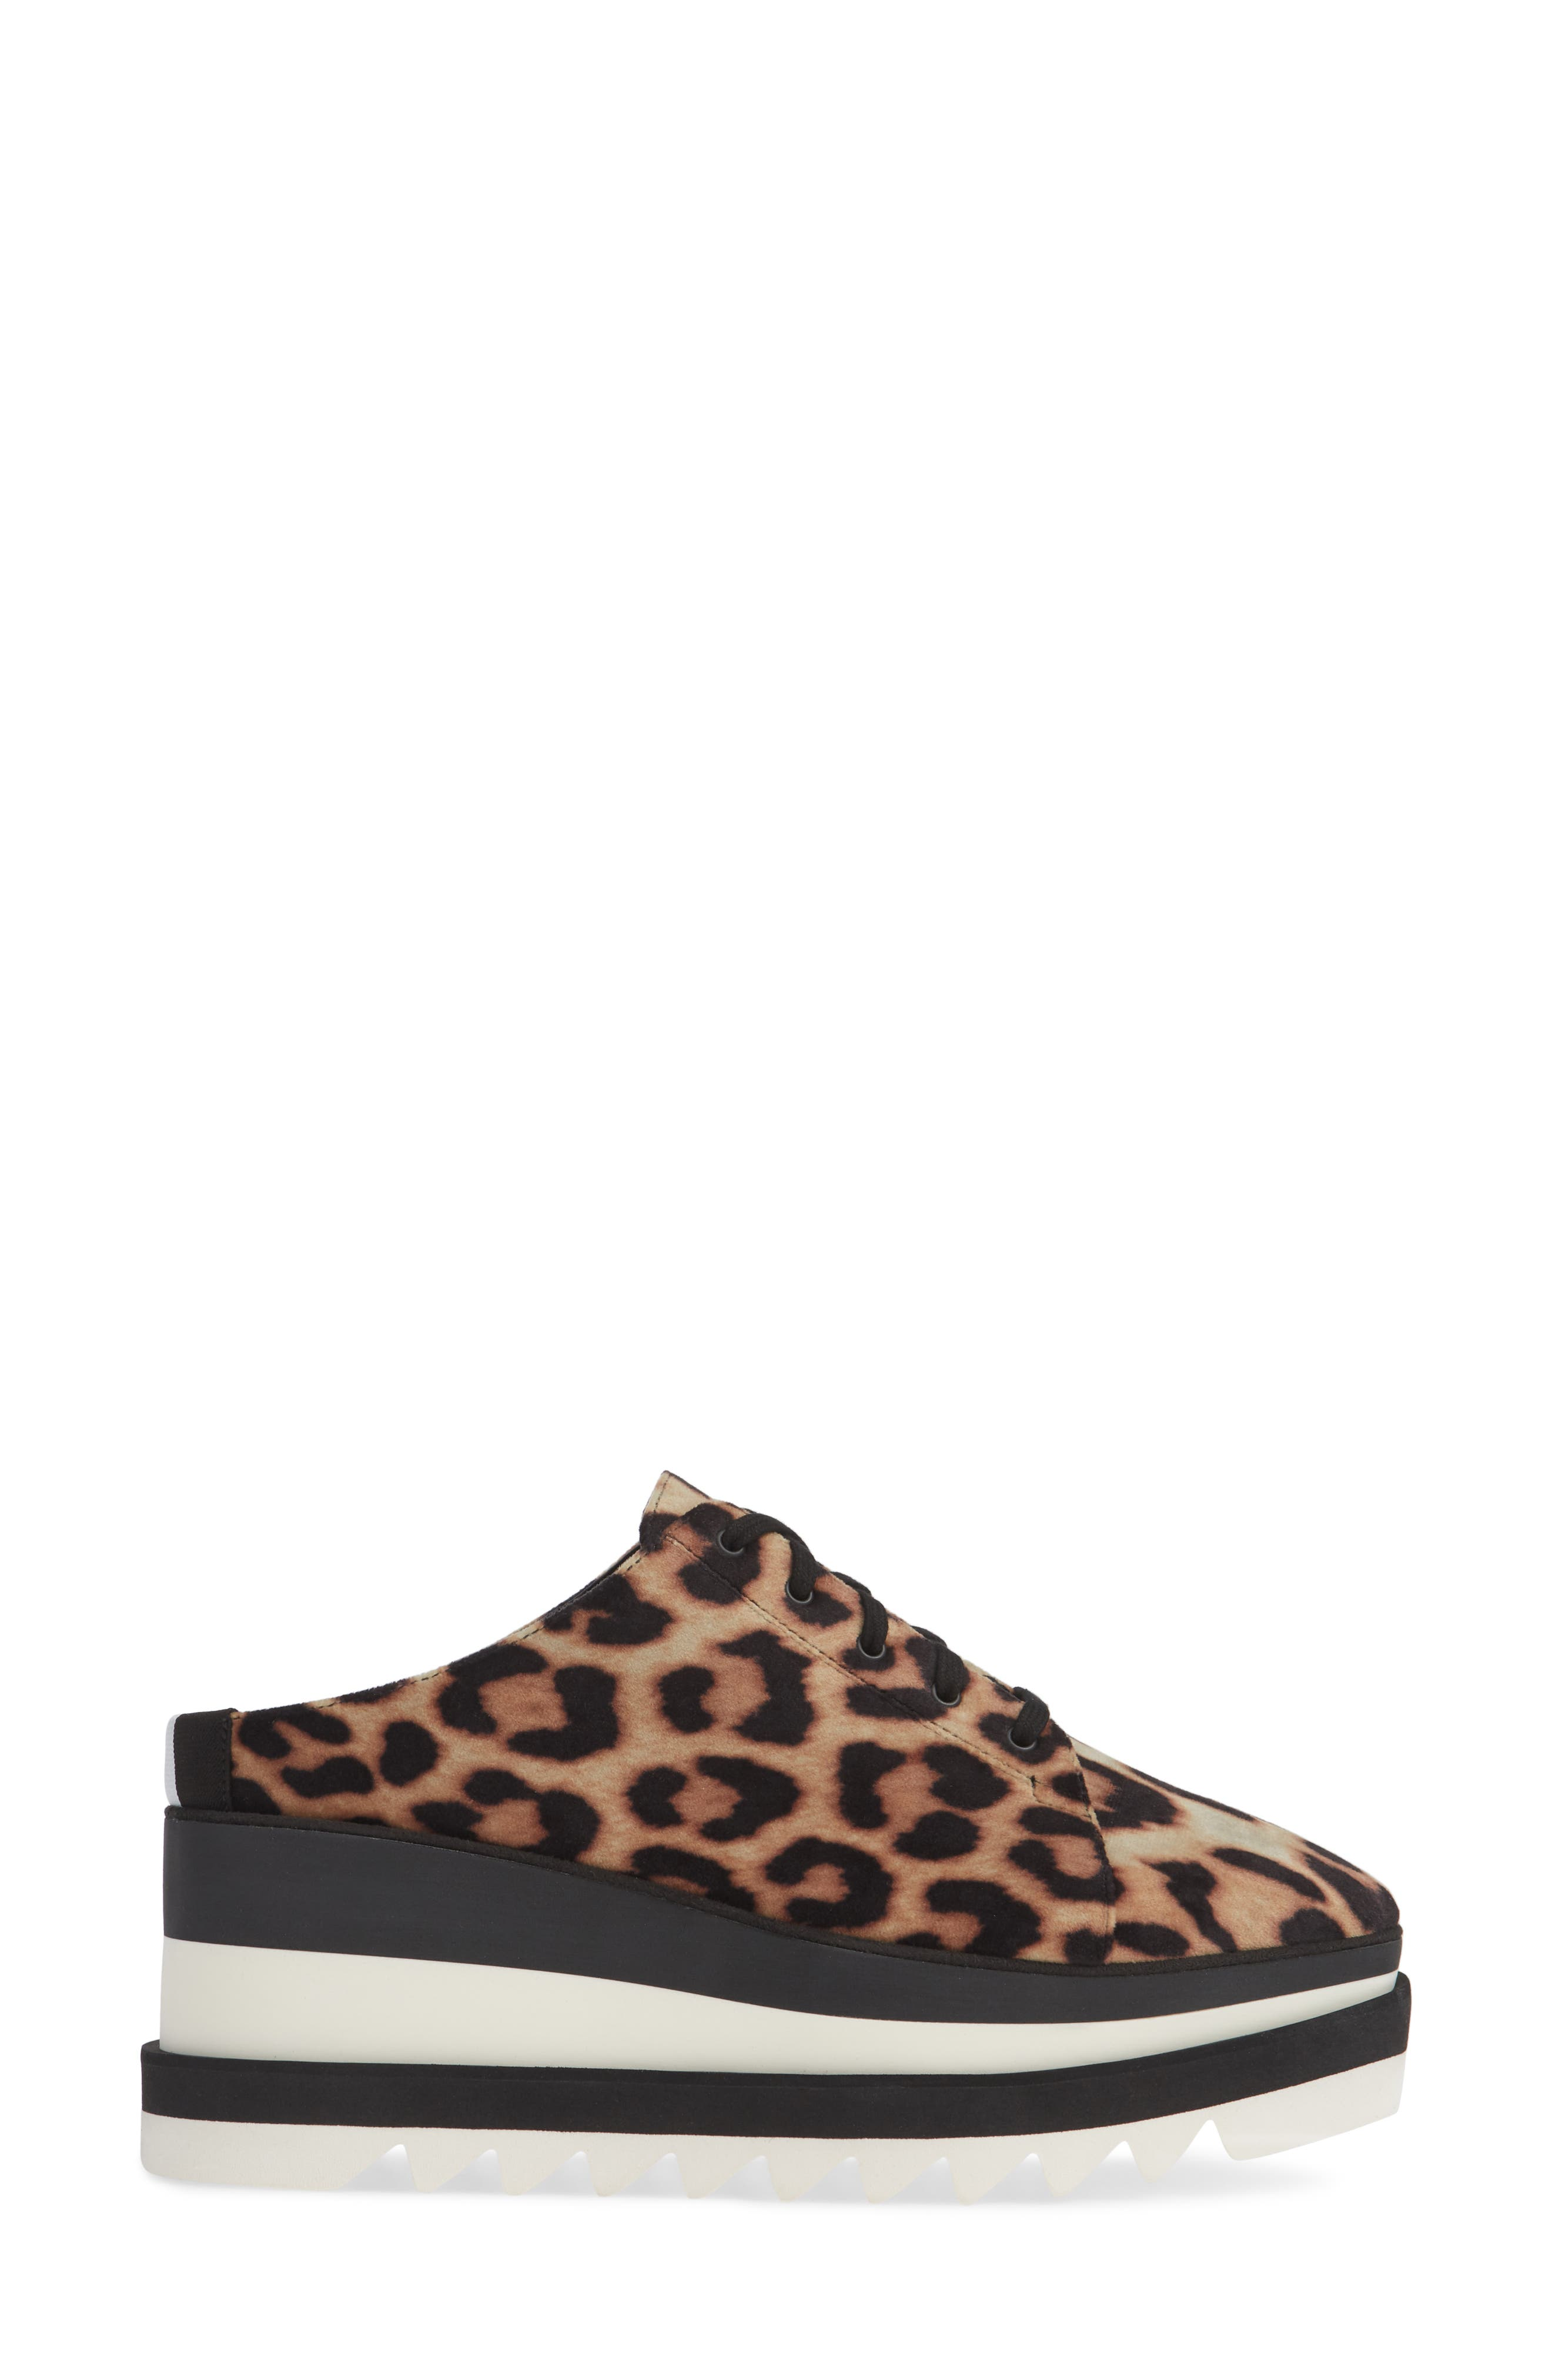 Sneak-Elyse Platform Mule,                             Alternate thumbnail 3, color,                             LEOPARD PRINT